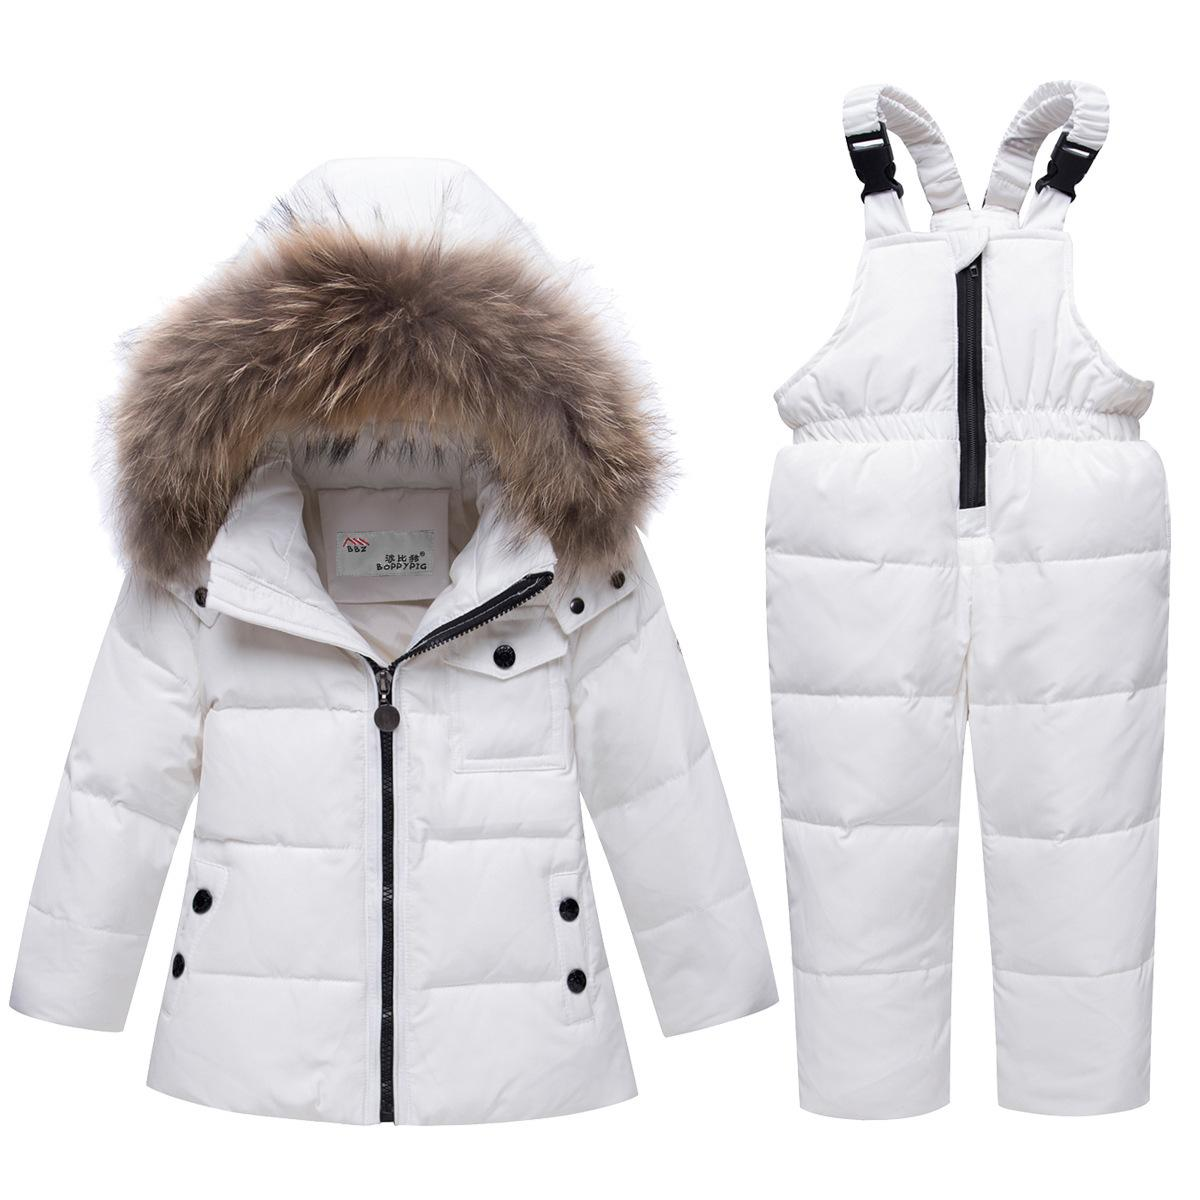 0e37cee76 Russian Winter Suits For Boys Girls 2018 Ski Suit Children Clothing ...